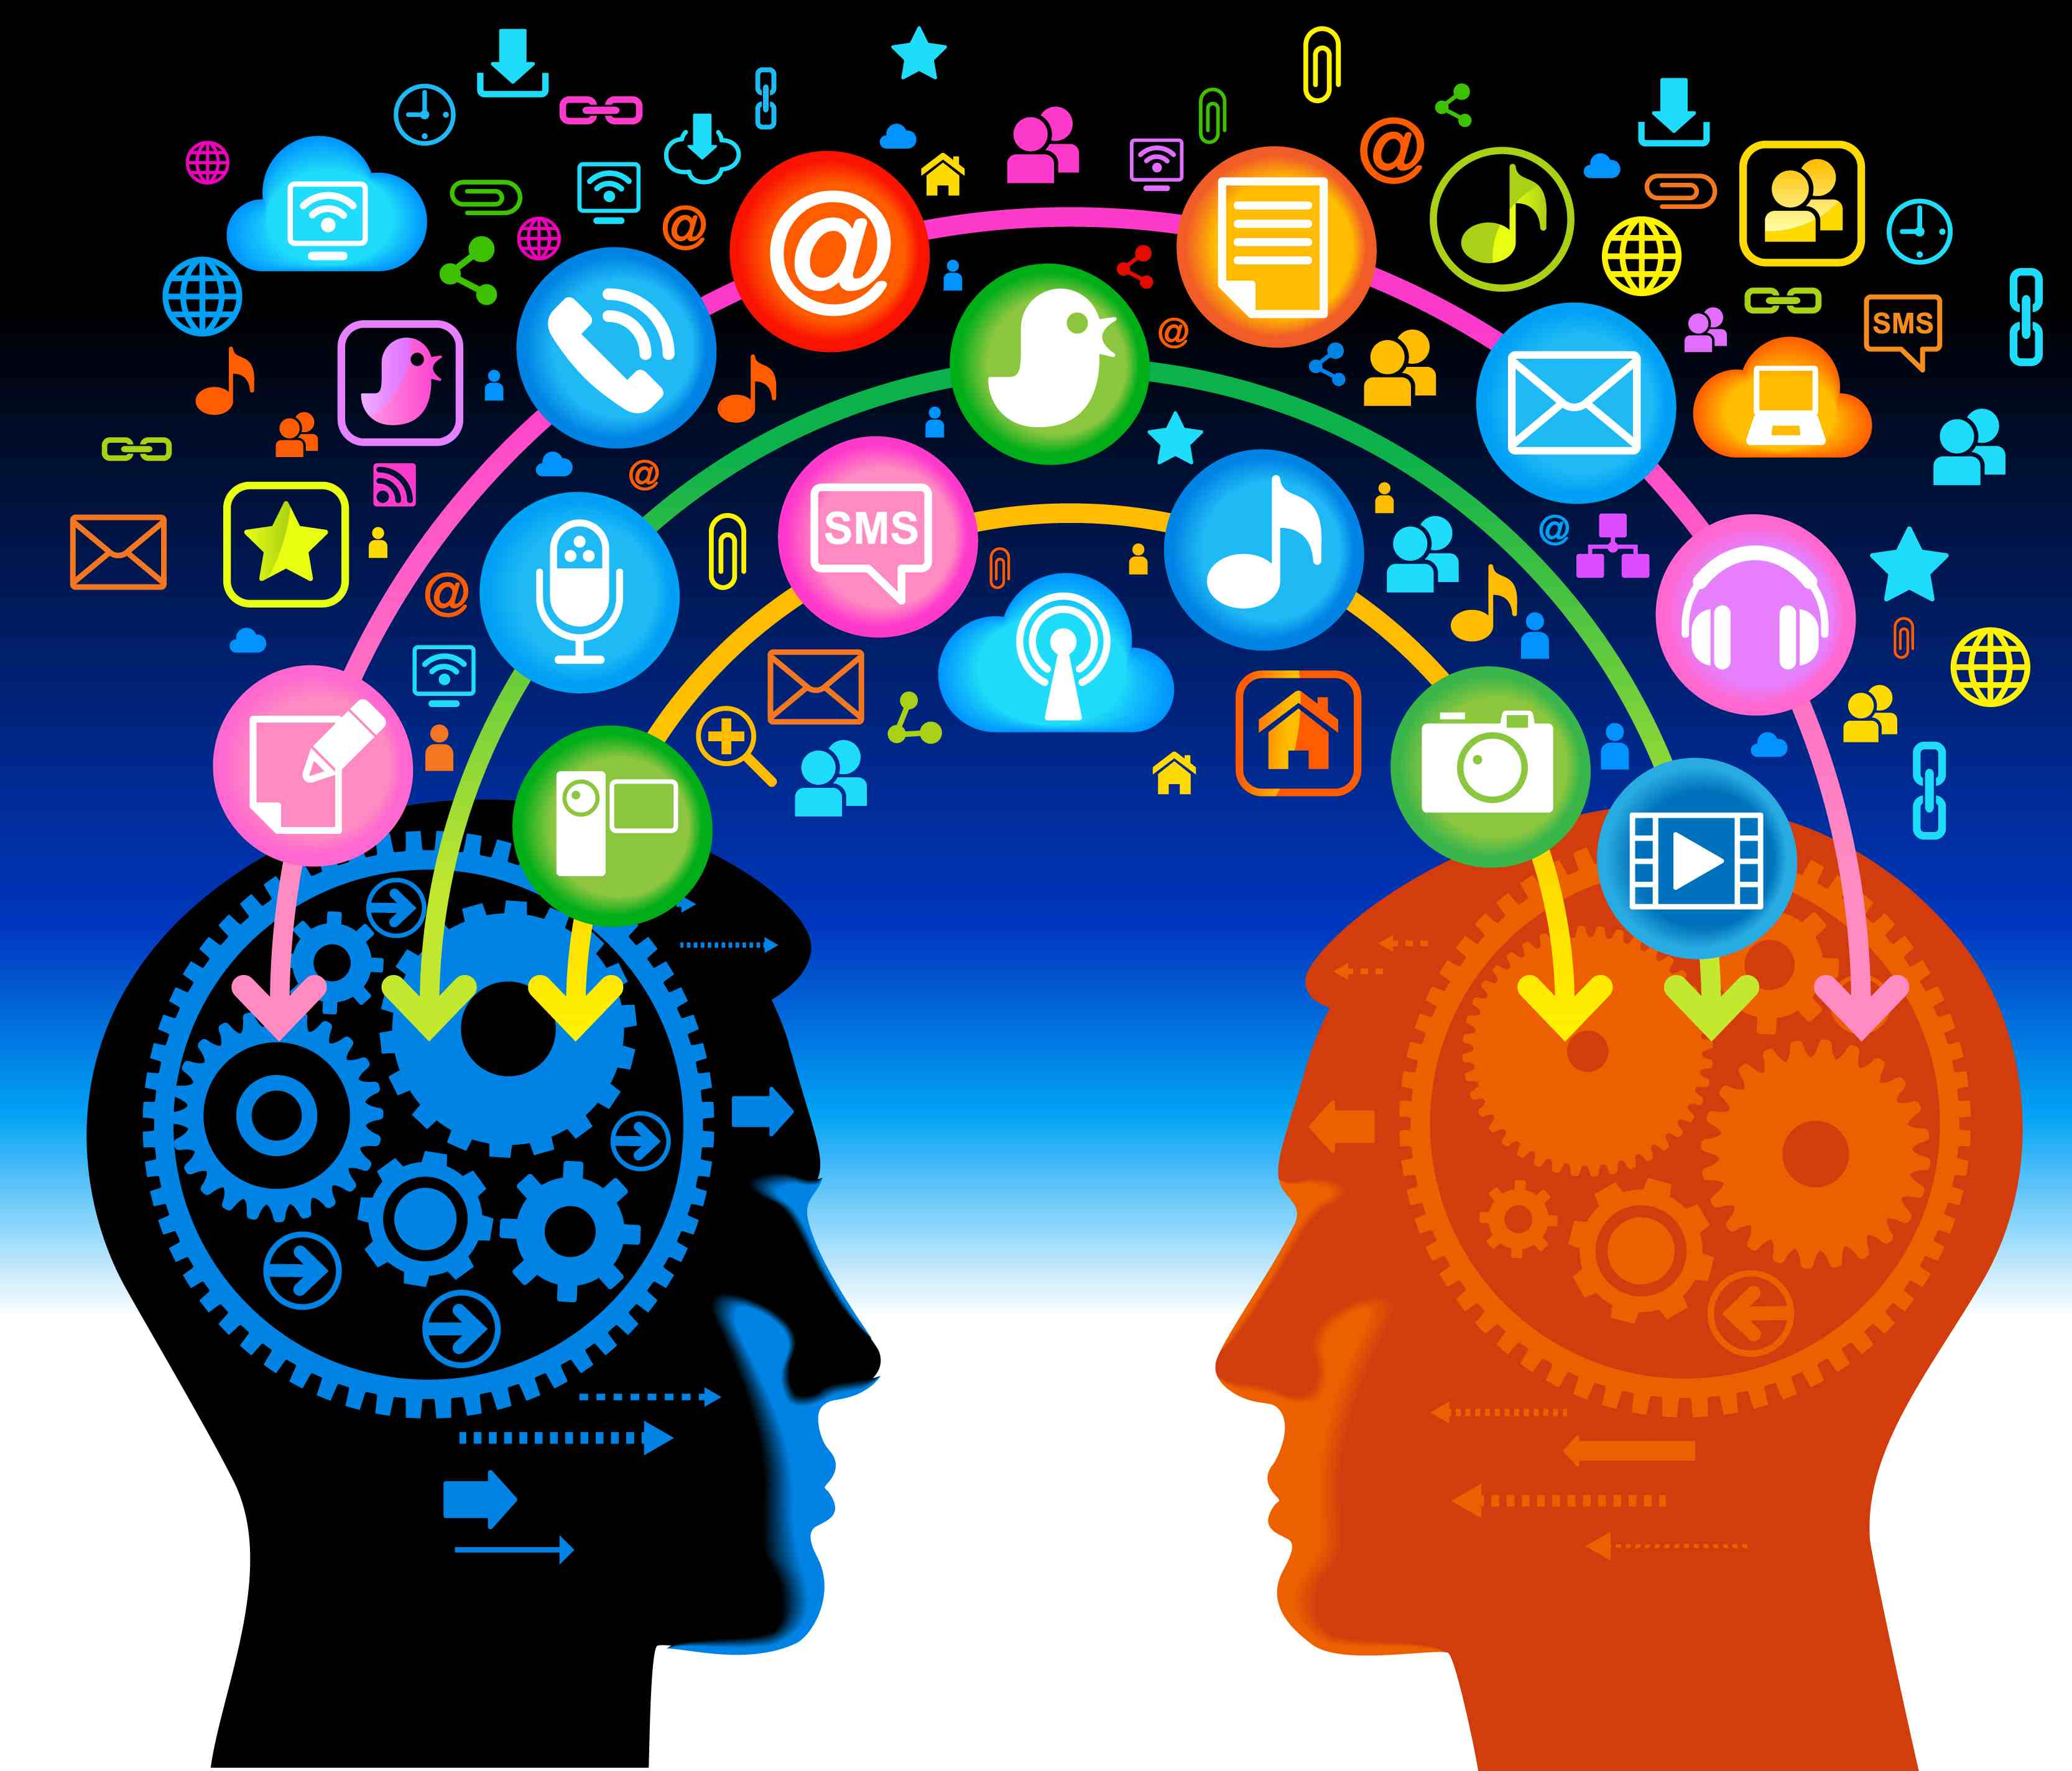 the psychology of facebook This course is part of the introduction to psychology program, based on the first unit of monash university's fully online graduate diploma of psychology (gdp) learners who successfully complete the seven courses in the program and who are accepted into the graduate diploma of psychology will receive one unit of academic credit.